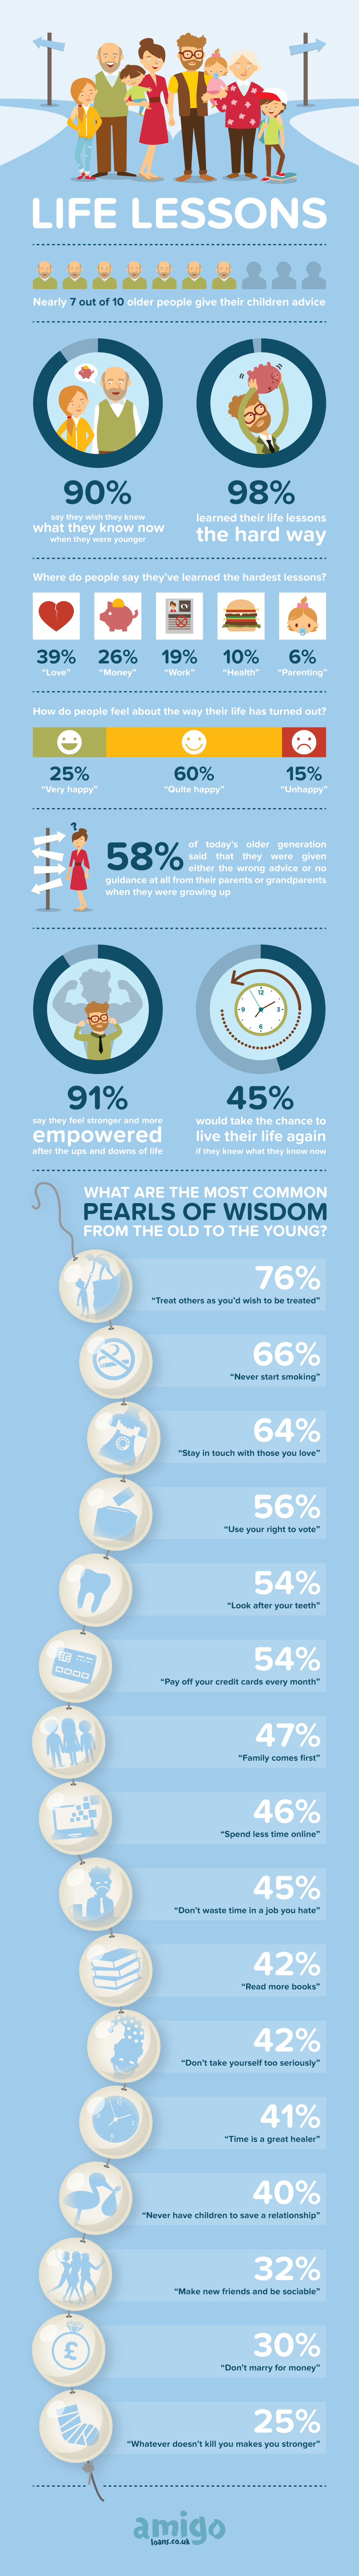 Life Lessons & Pearls of Wisdom